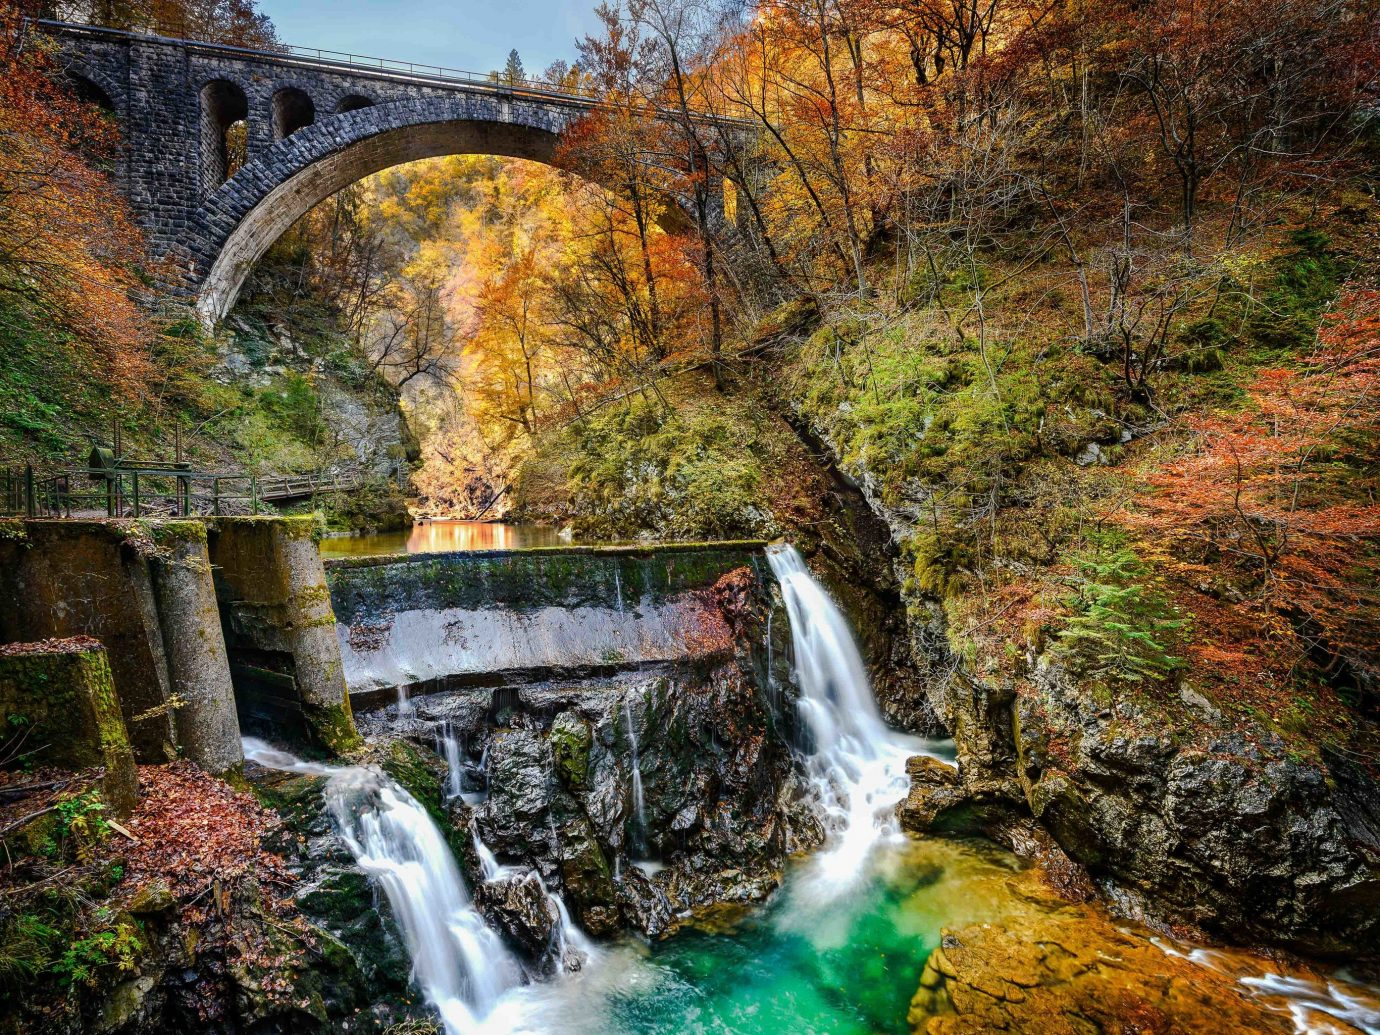 Croatia Eastern Europe europe Montenegro Slovenia Trip Ideas water Nature Waterfall leaf body of water vegetation watercourse nature reserve autumn stream tree water feature River reflection landscape creek plant water resources chute state park arroyo rock